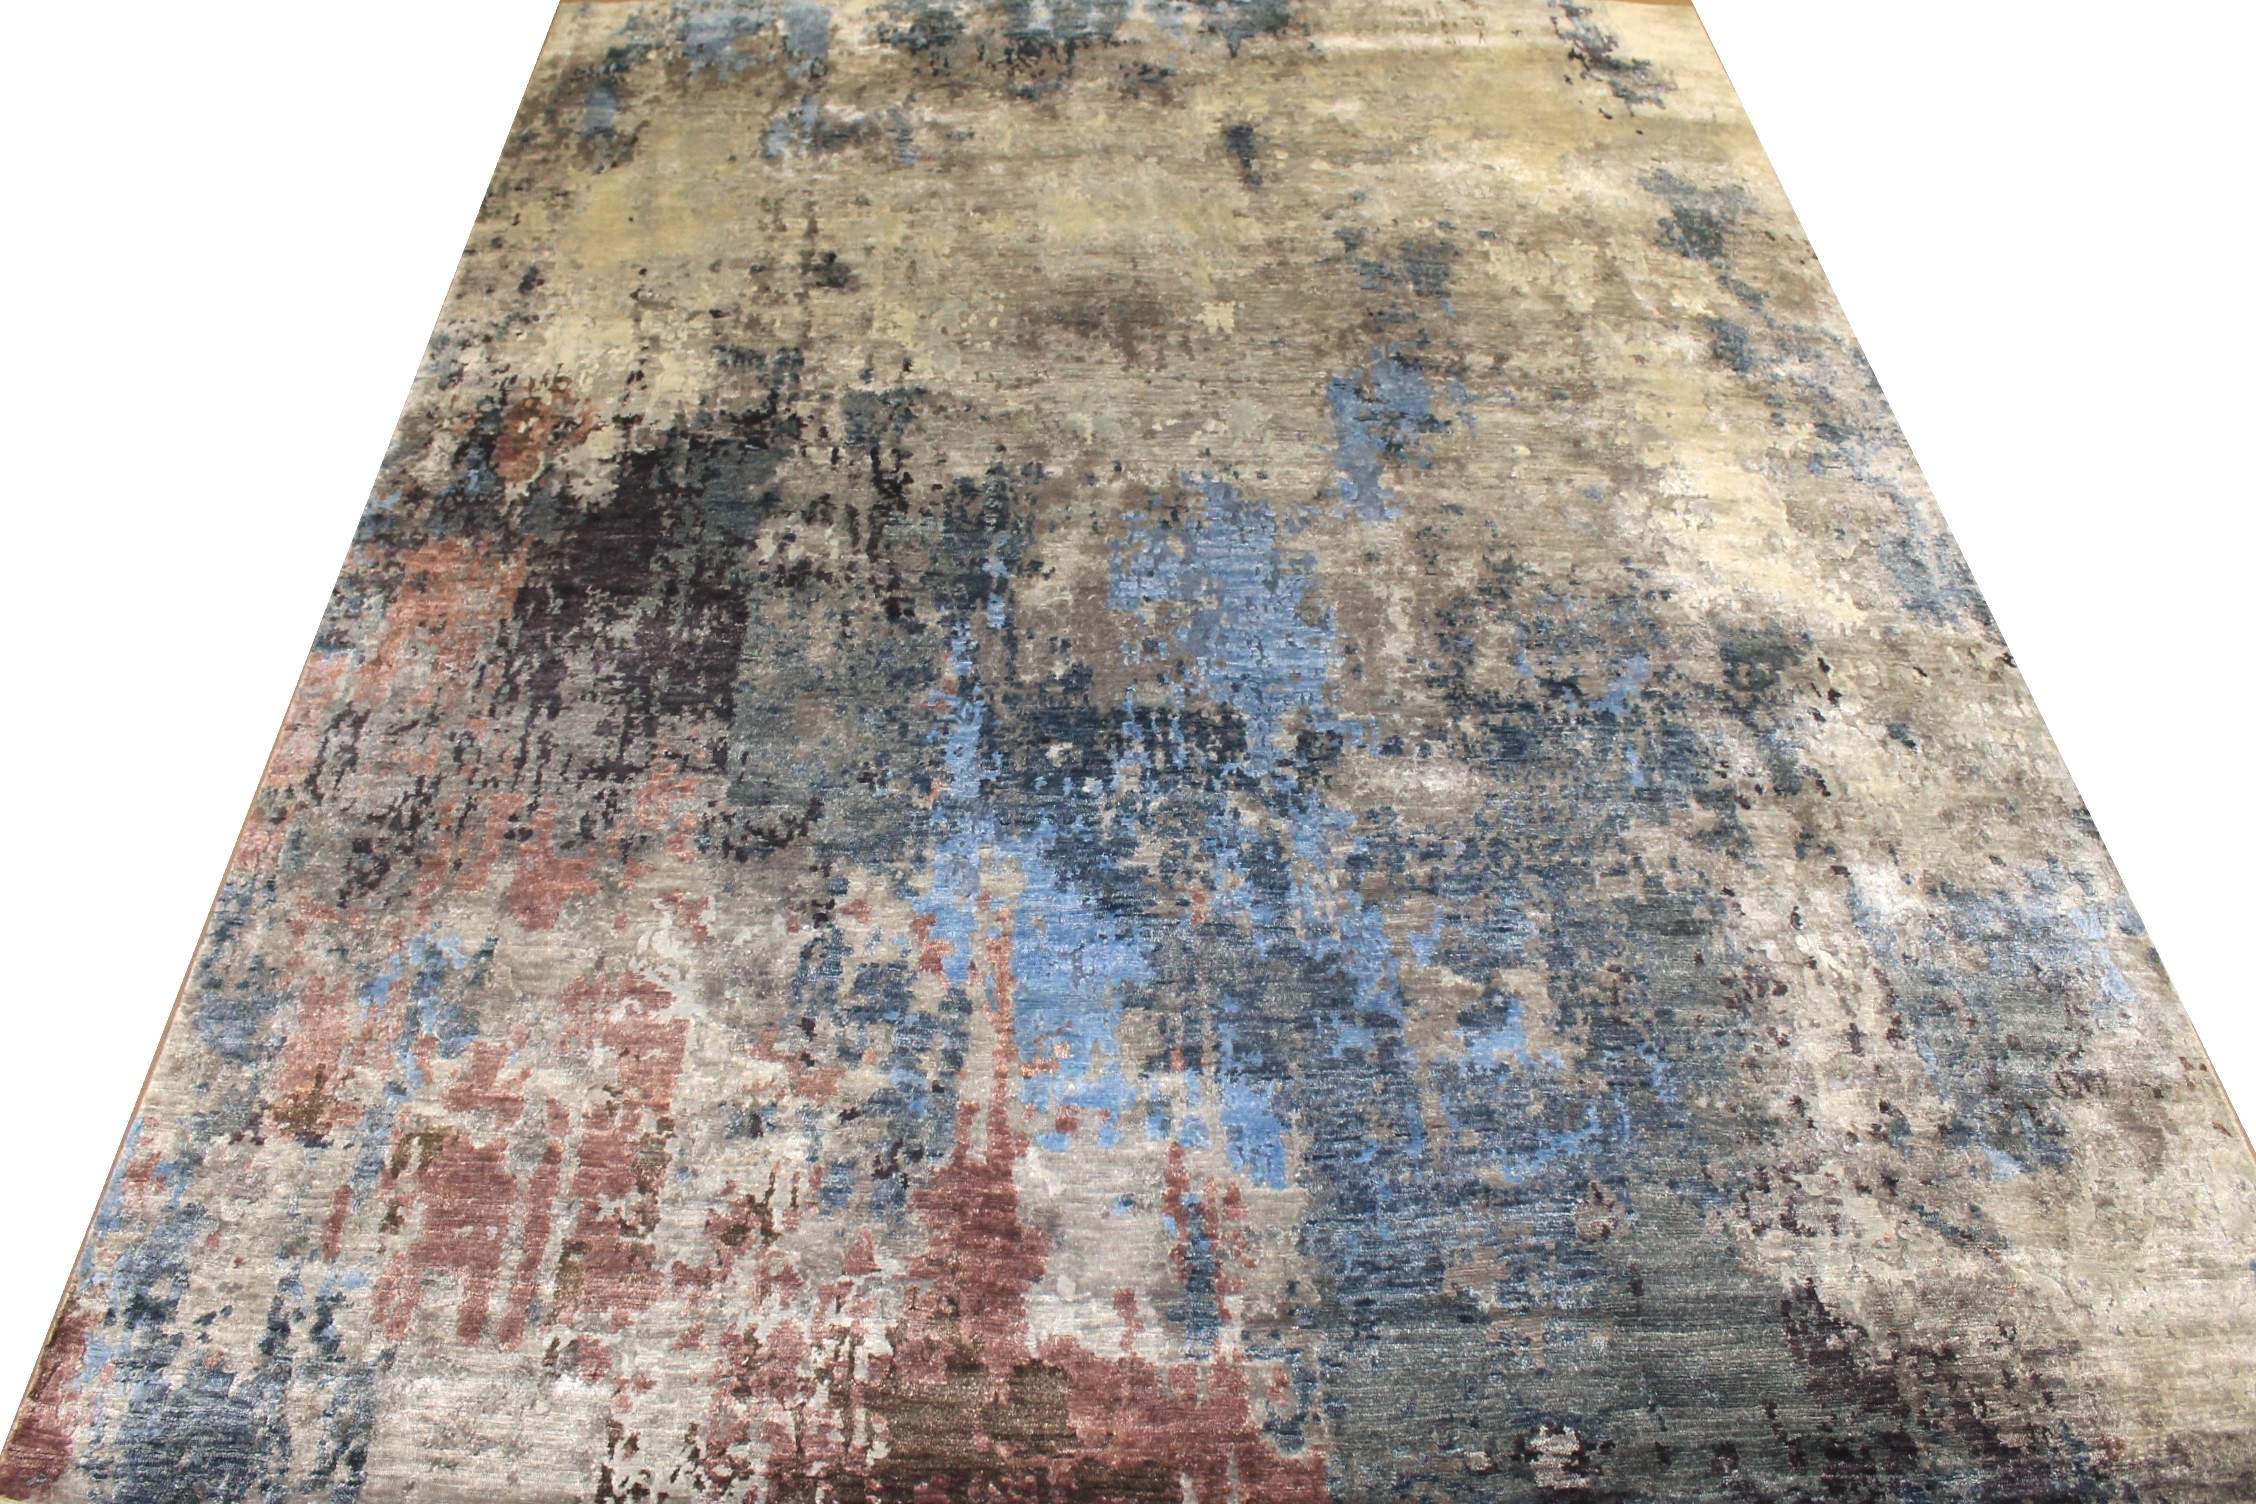 8x10 Modern Hand Knotted Wool & Viscose Area Rug - MR025449